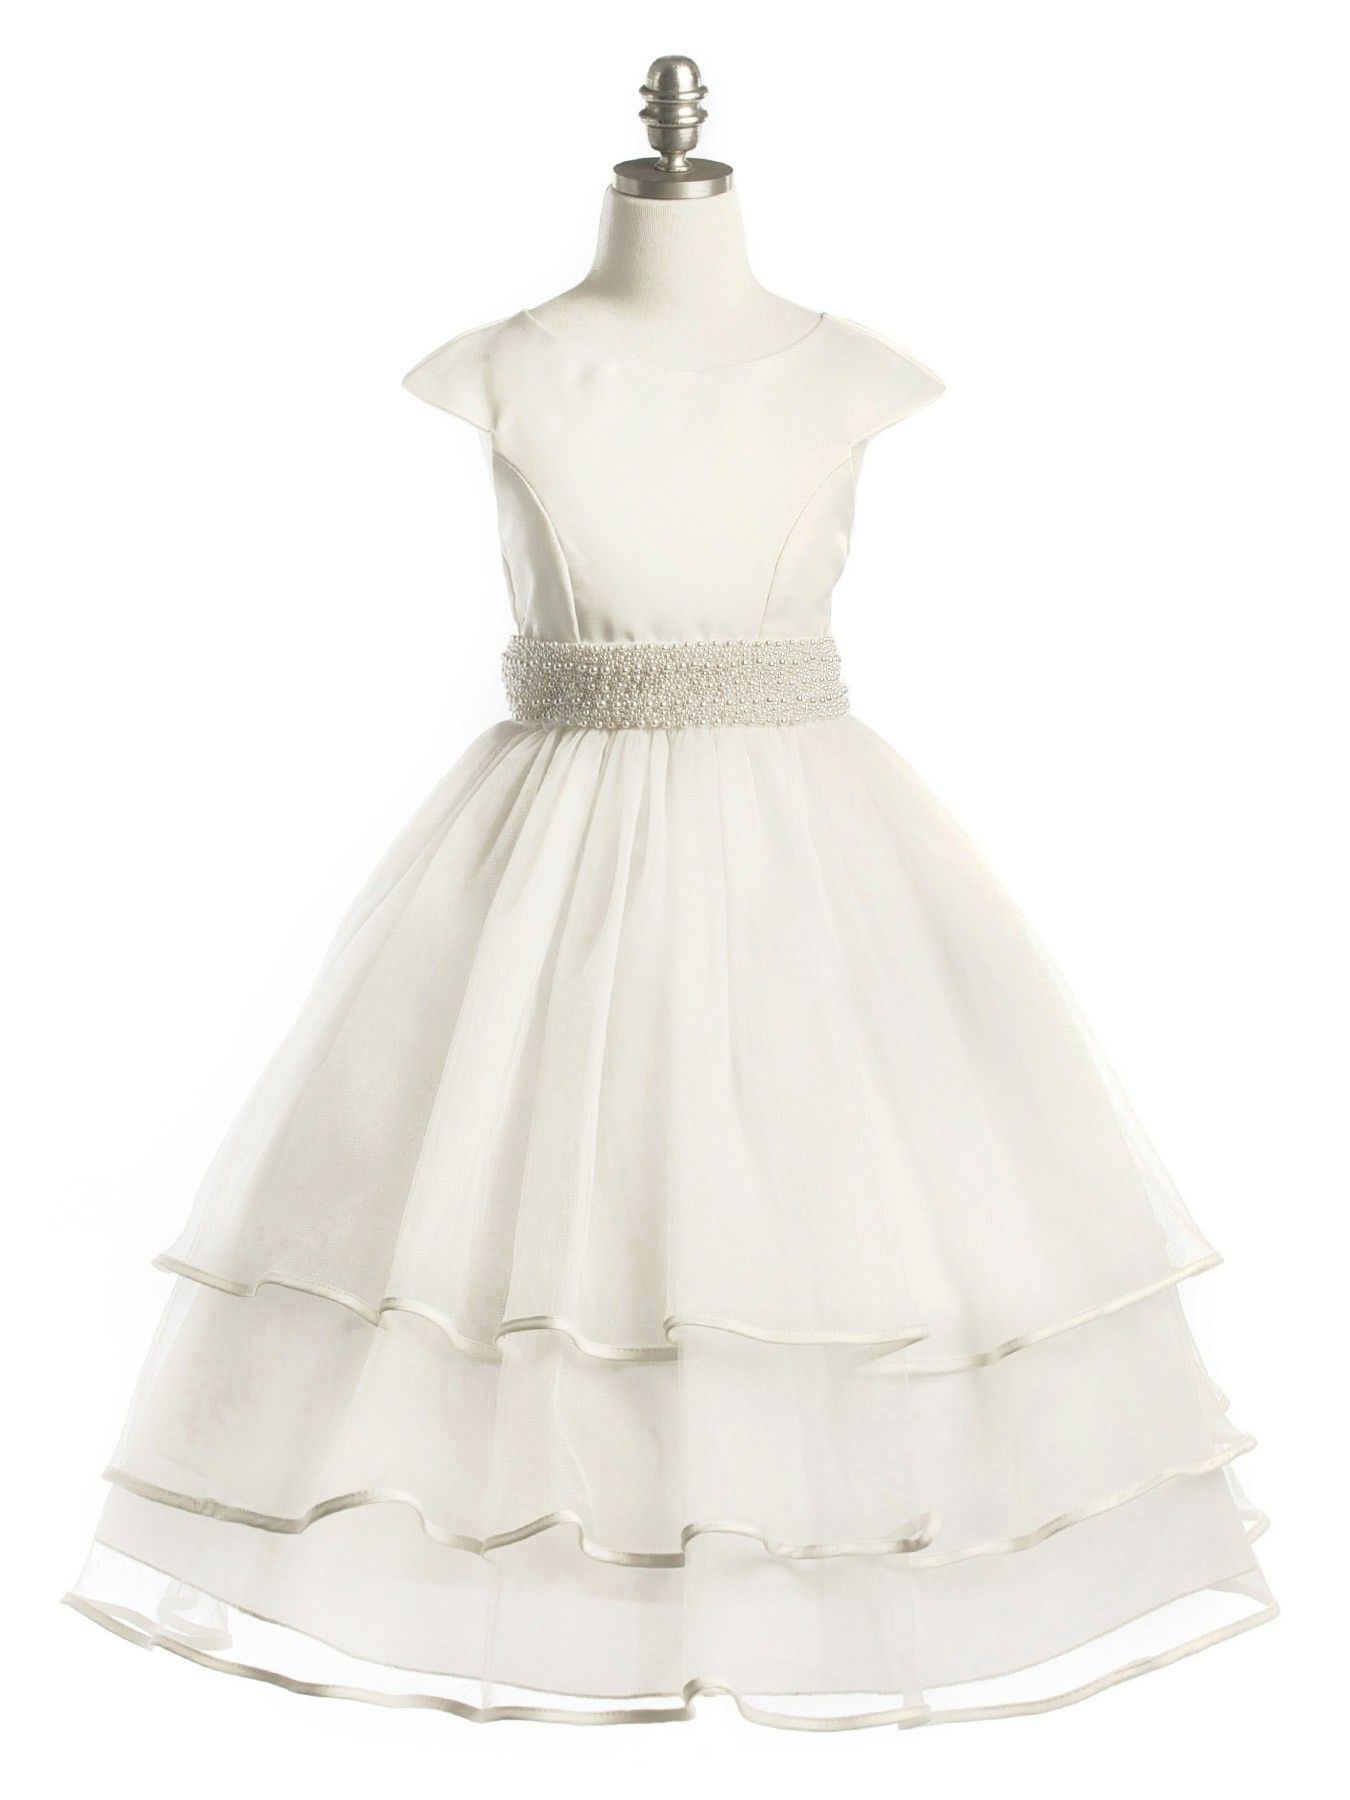 a6493b6a8ee Ivory Gorgeous Satin and Tulle with Pearl Sash Girl Dress (Girls Sizes 2-20  in 2 Colors)